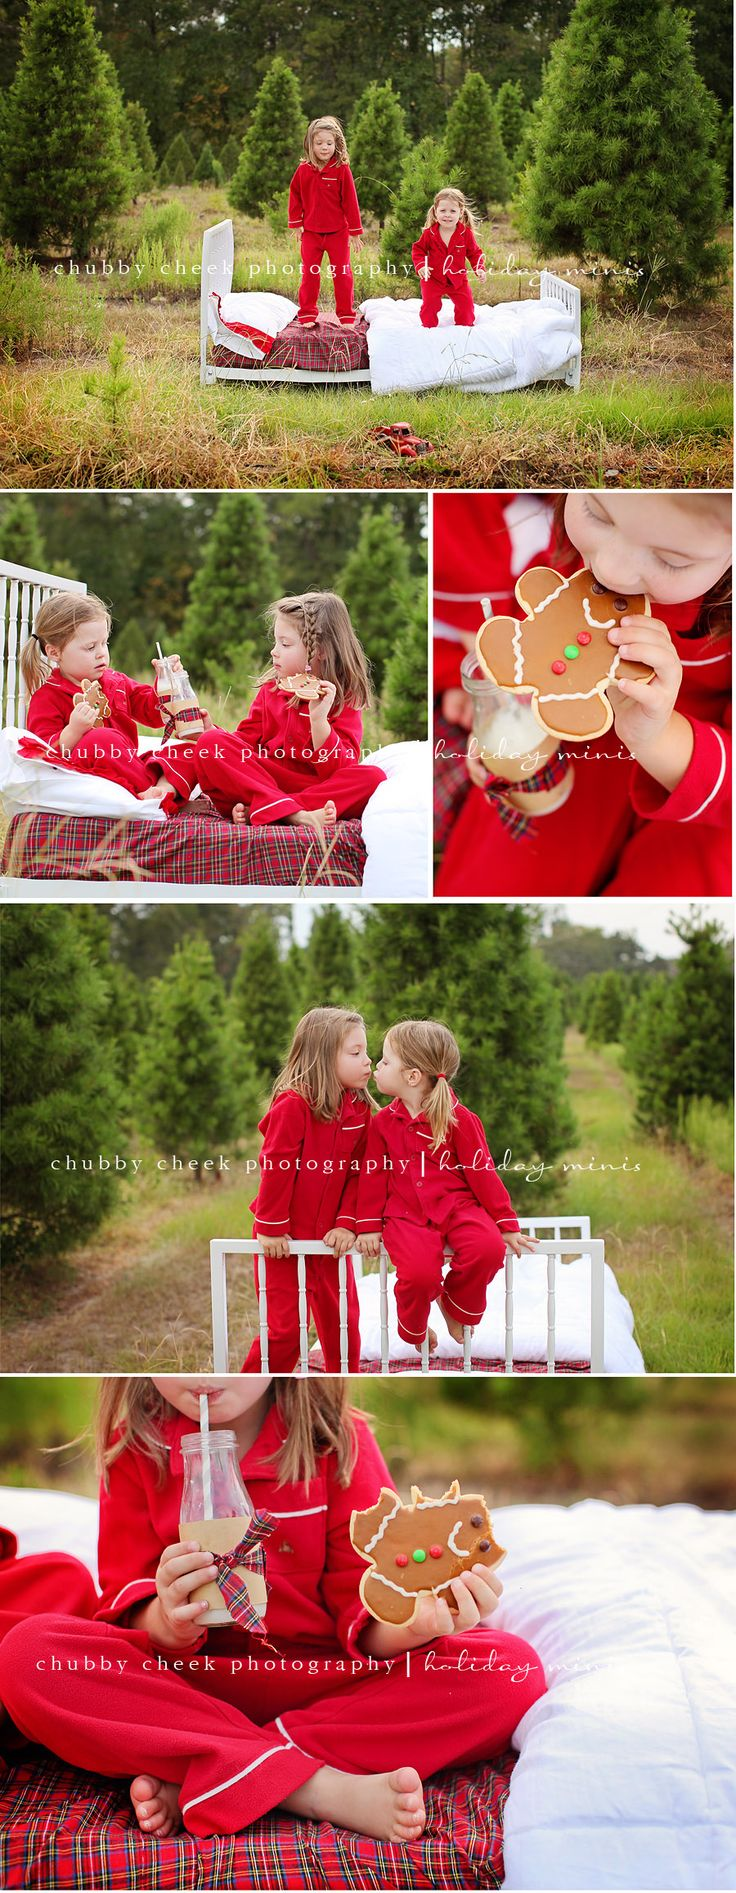 This Christmas photo shoot is just too cute. We have to do a similar shoot in the next few years.